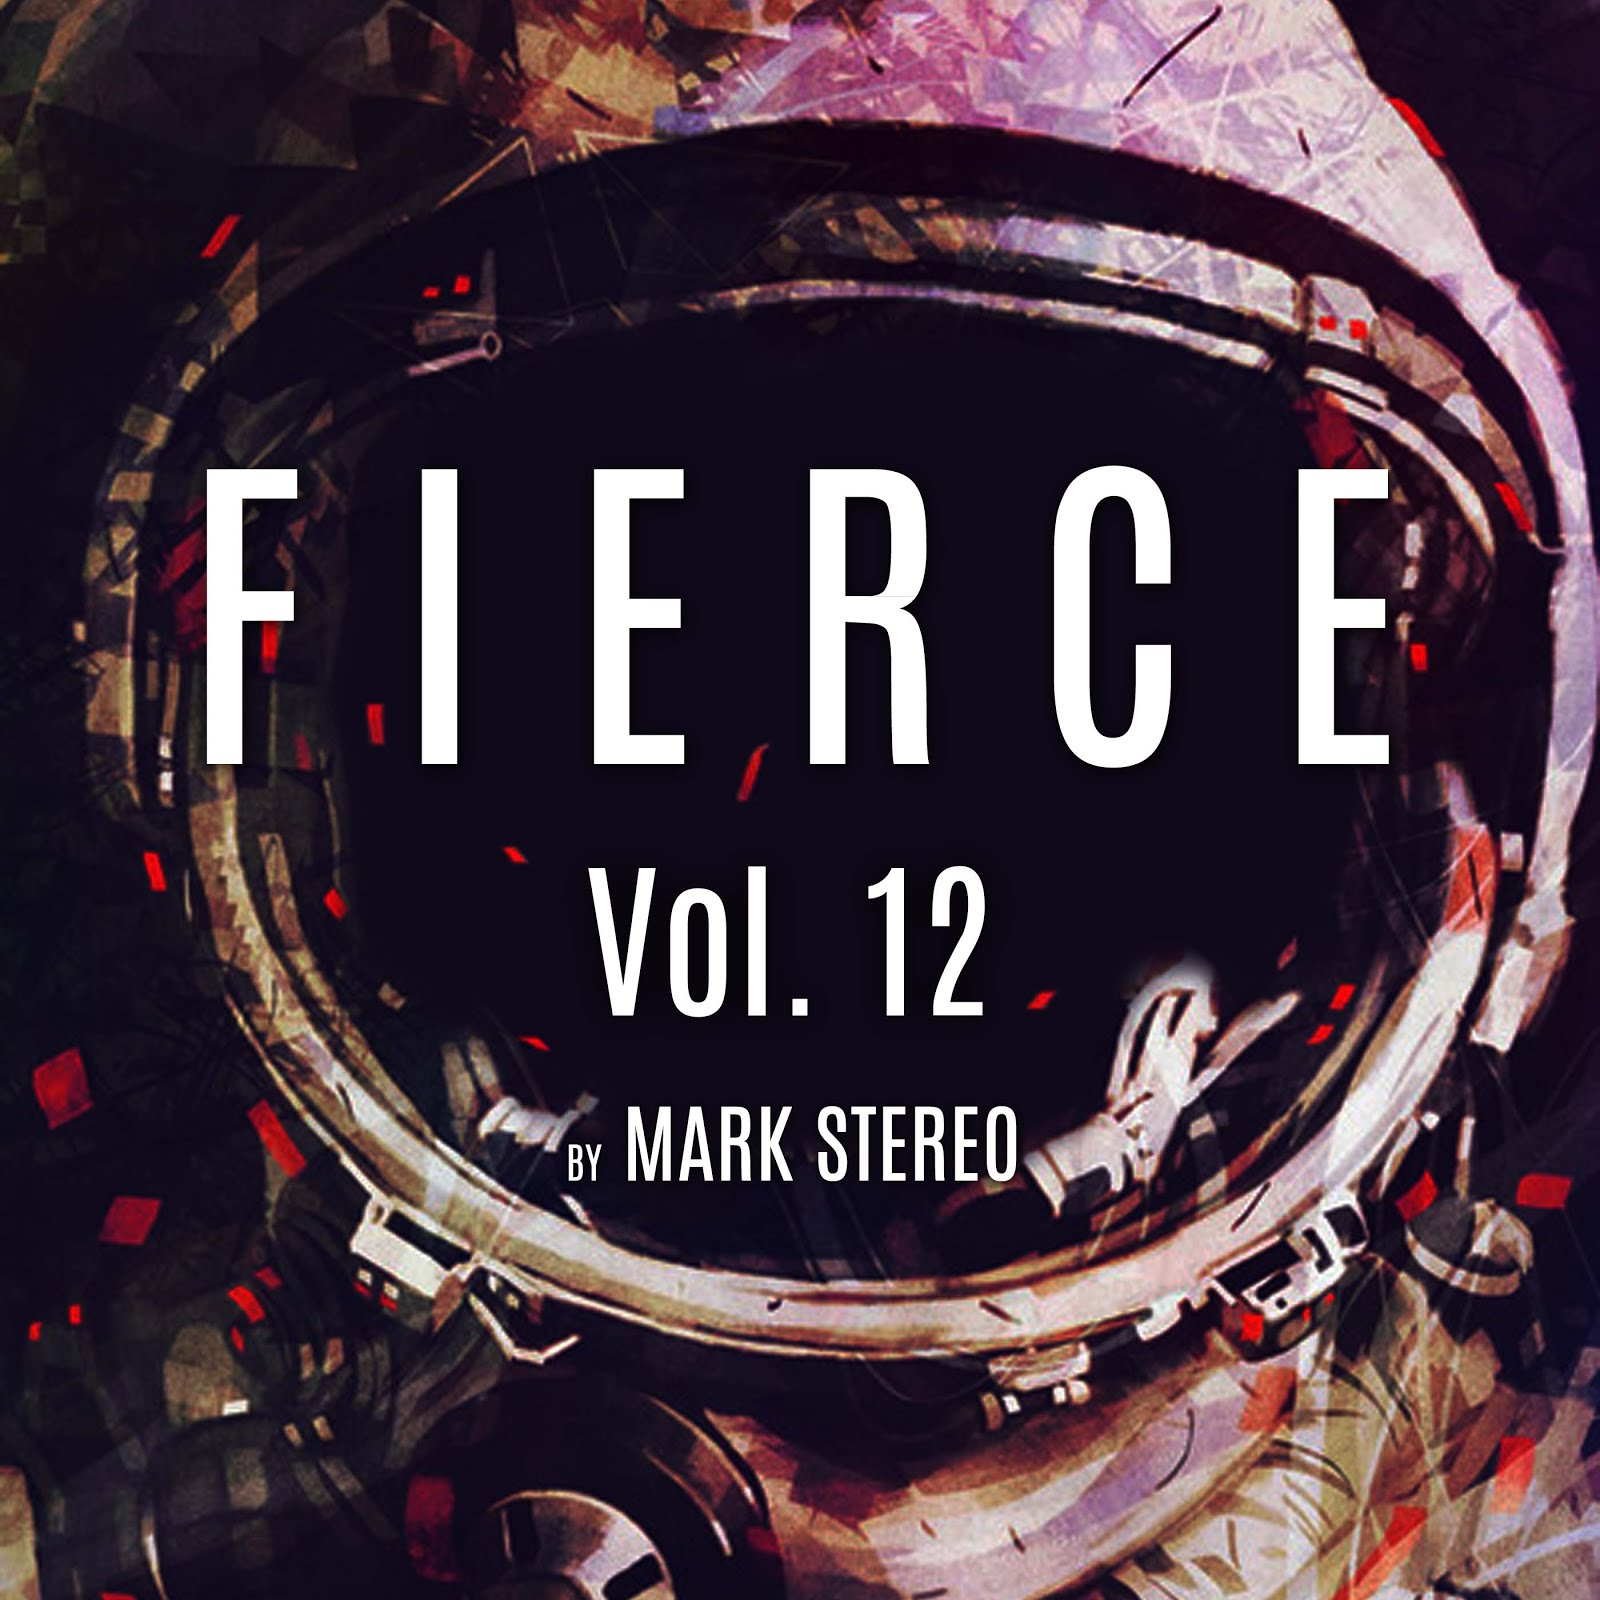 FIERCE VOL.12!!